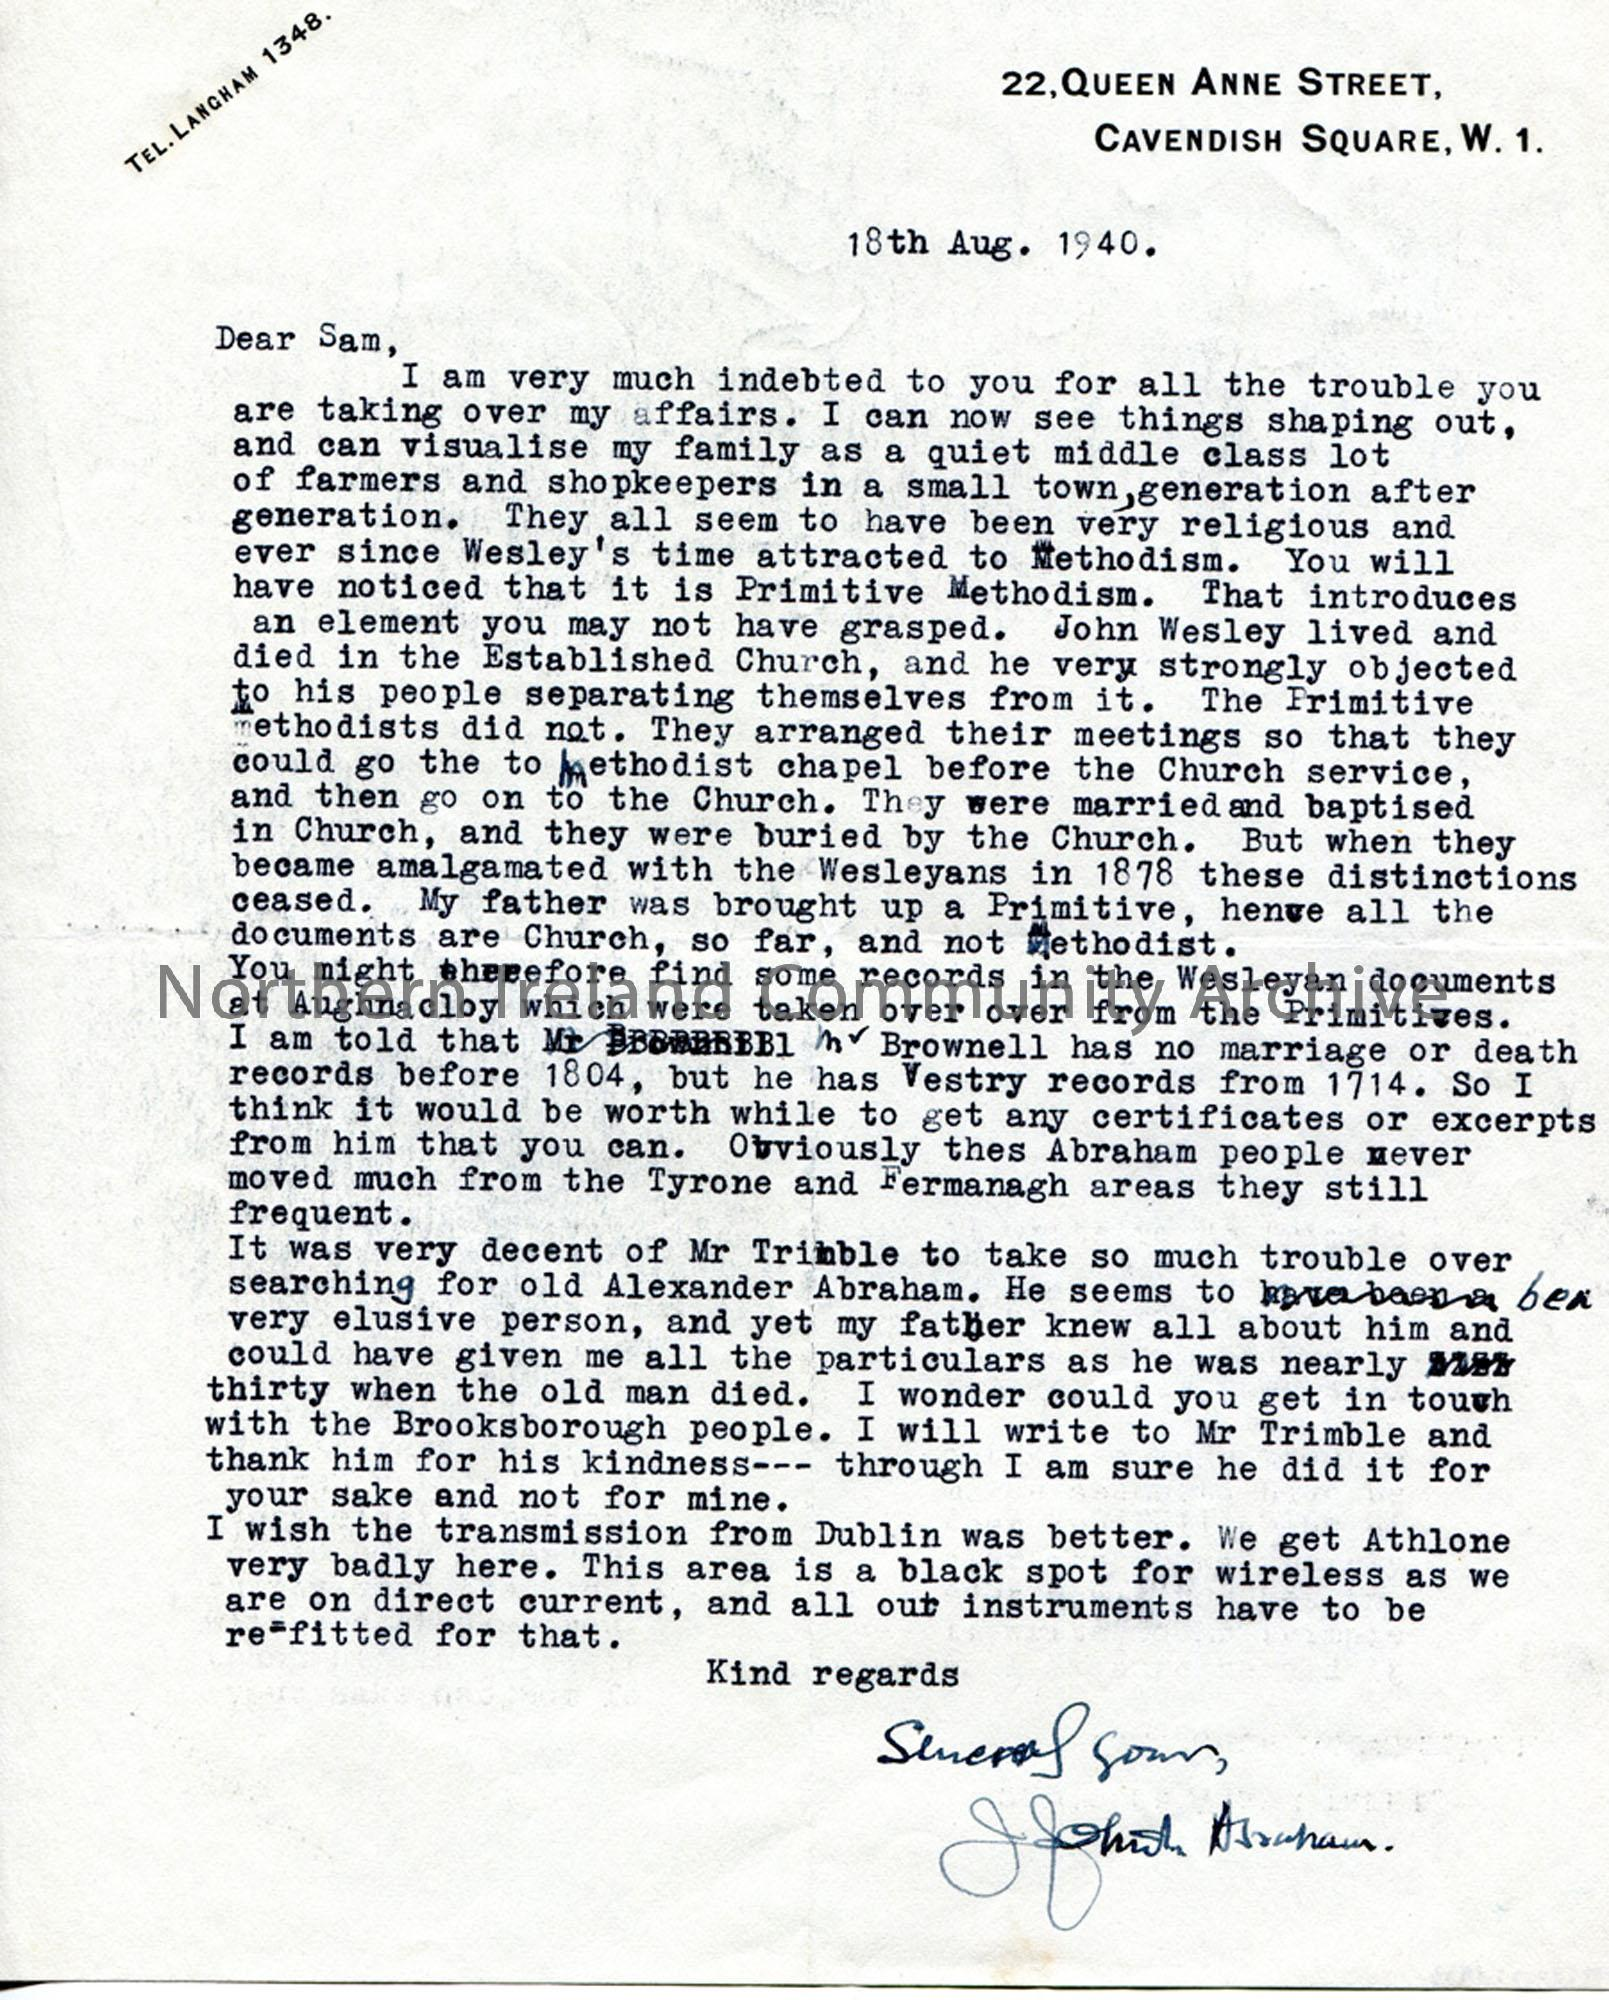 Letter from James Johnston Abraham 18.8.1940